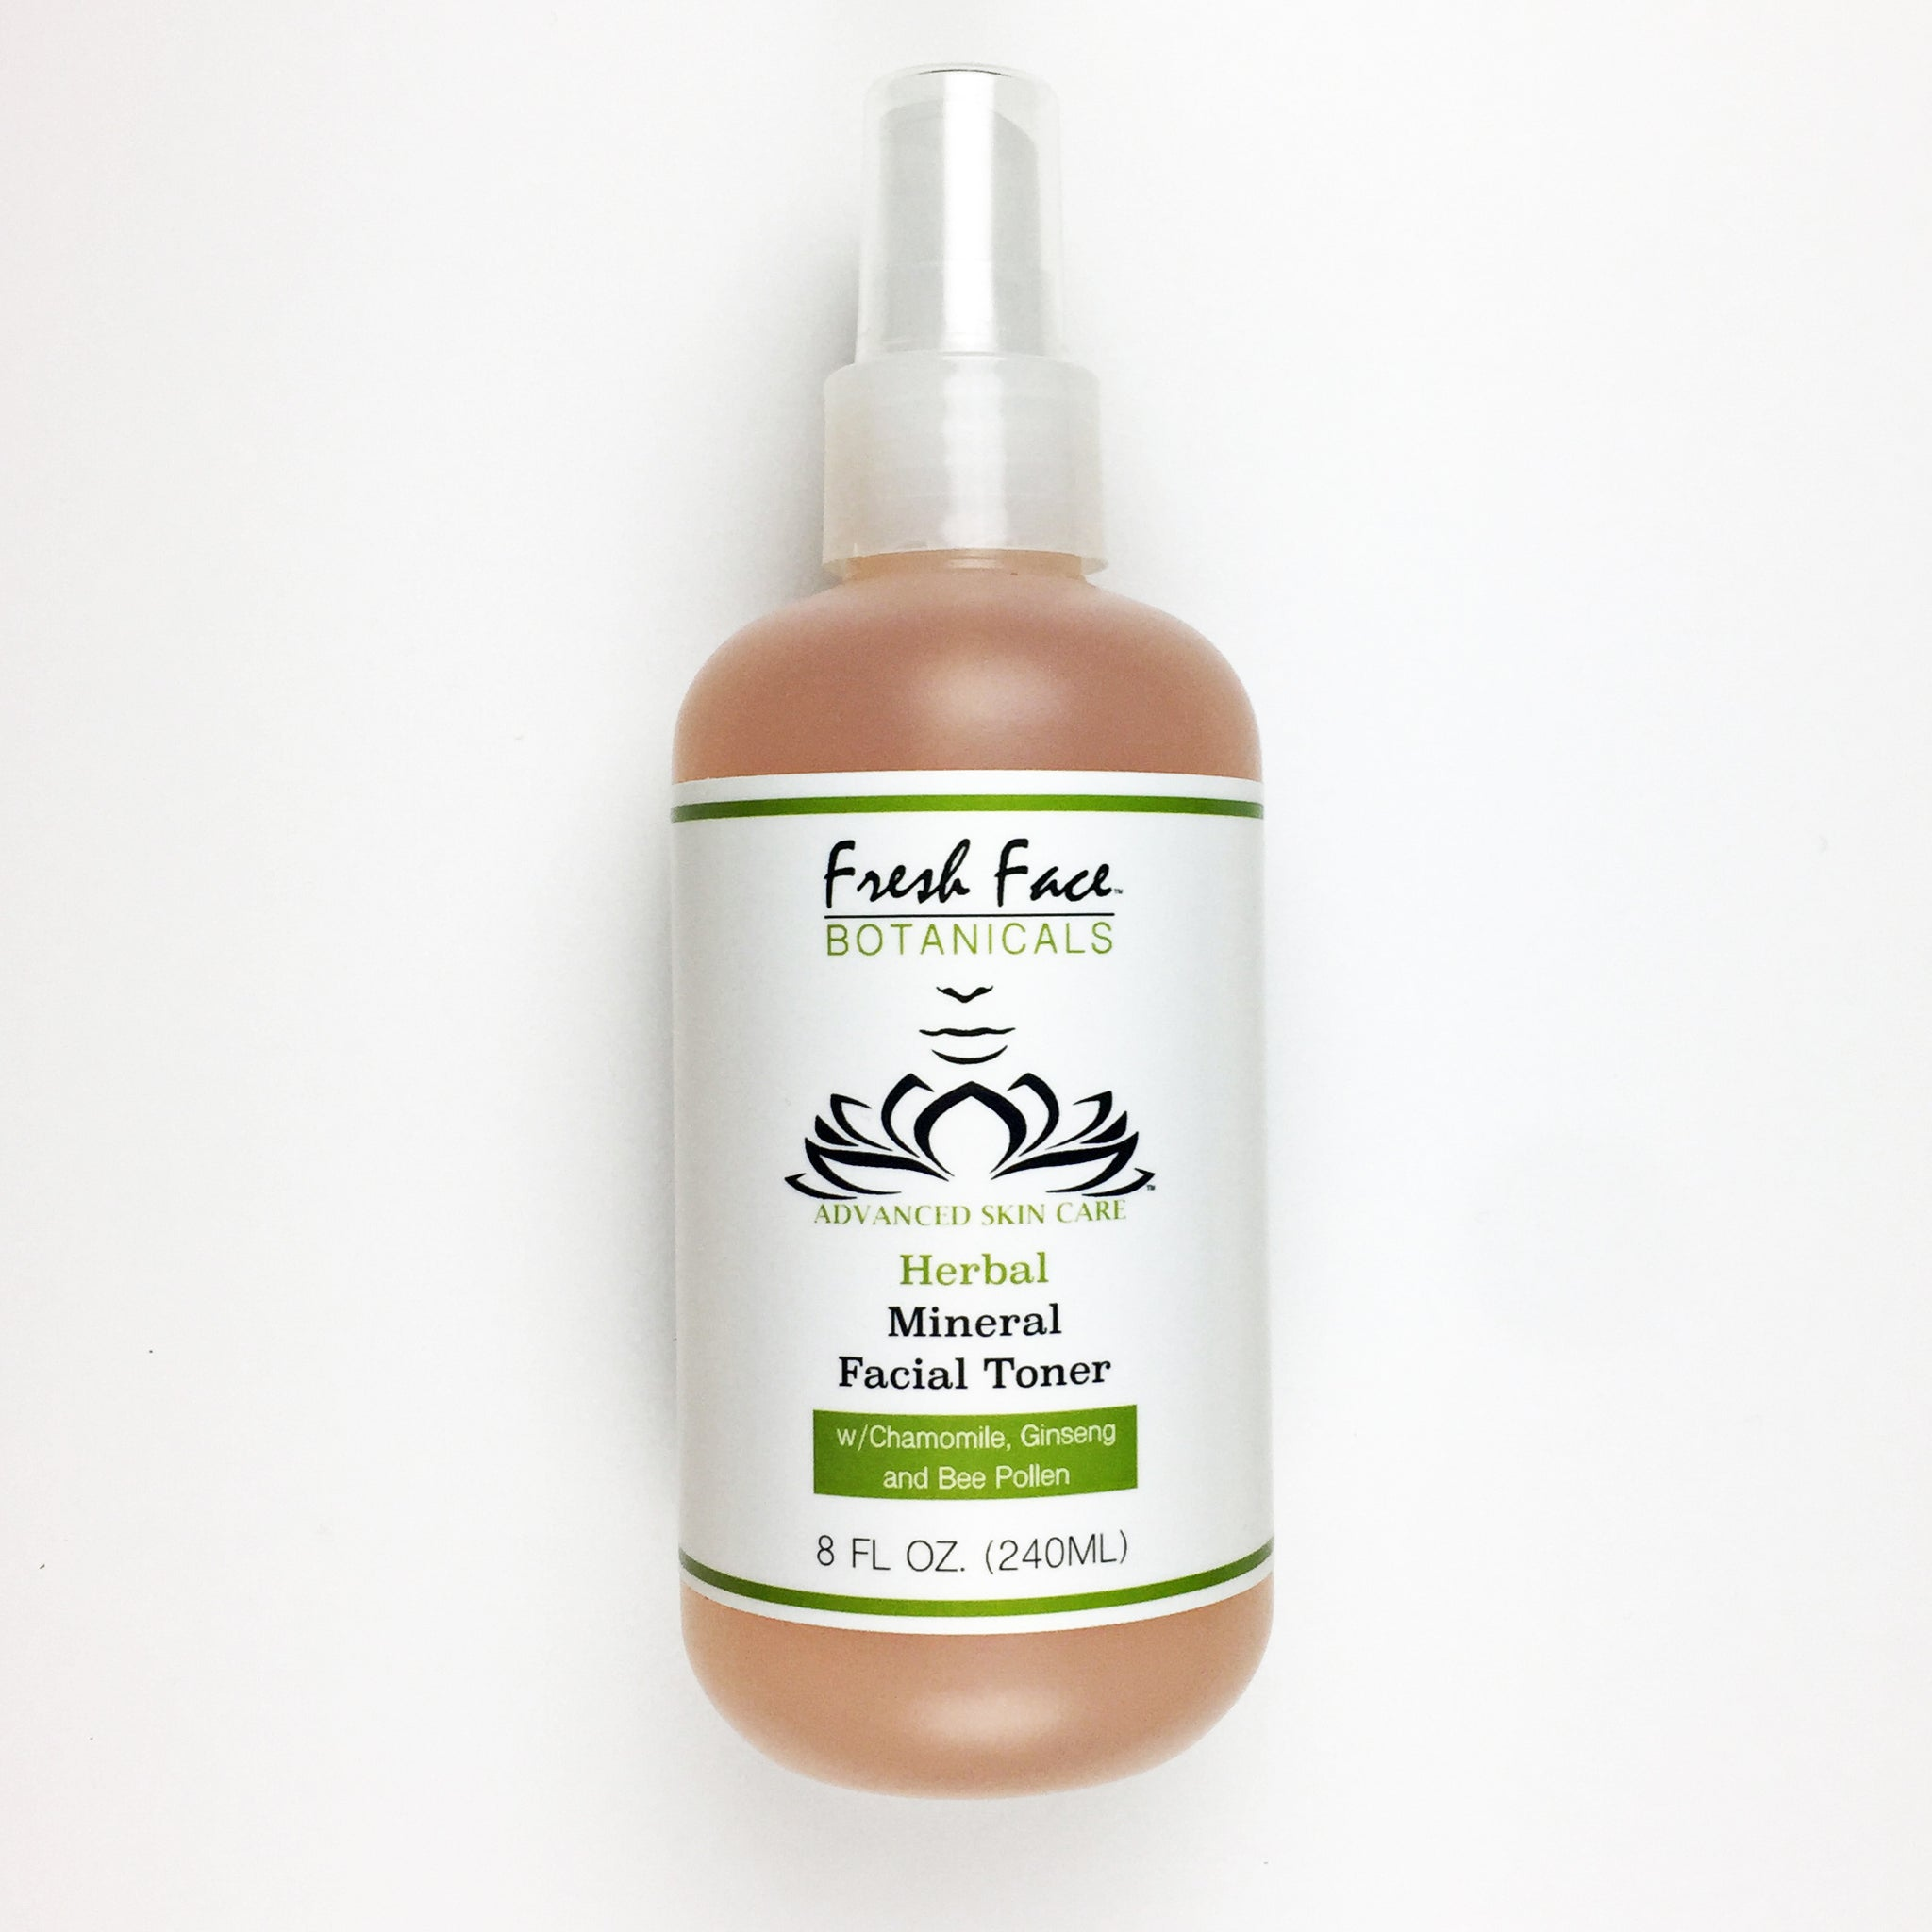 Herbal Mineral Facial Toner - Fresh Face Botanicals™ - Advanced Natural Skin Care